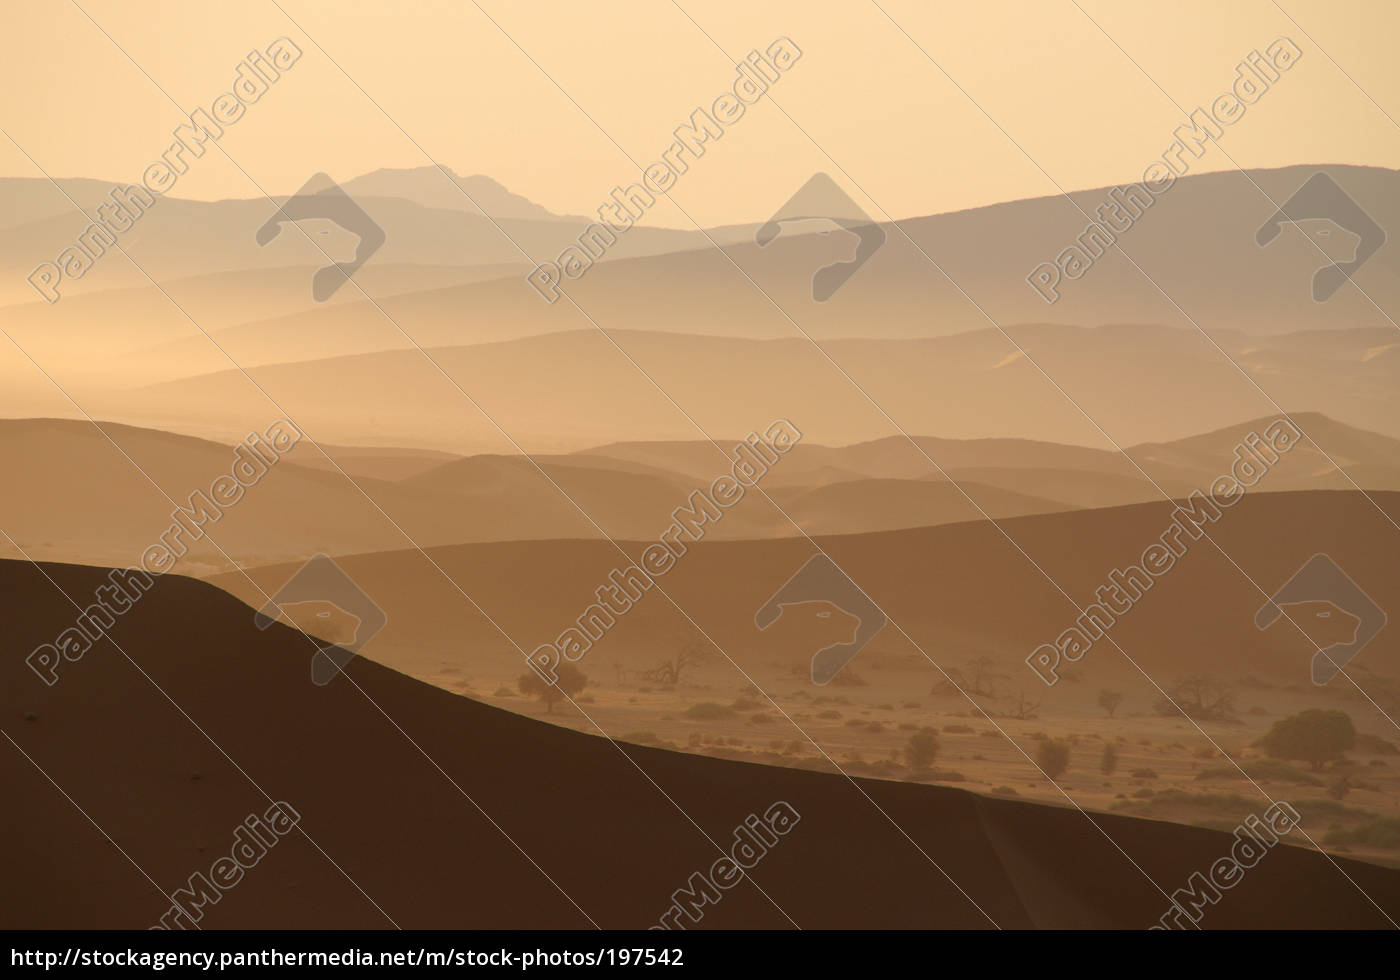 desert, morning - 197542